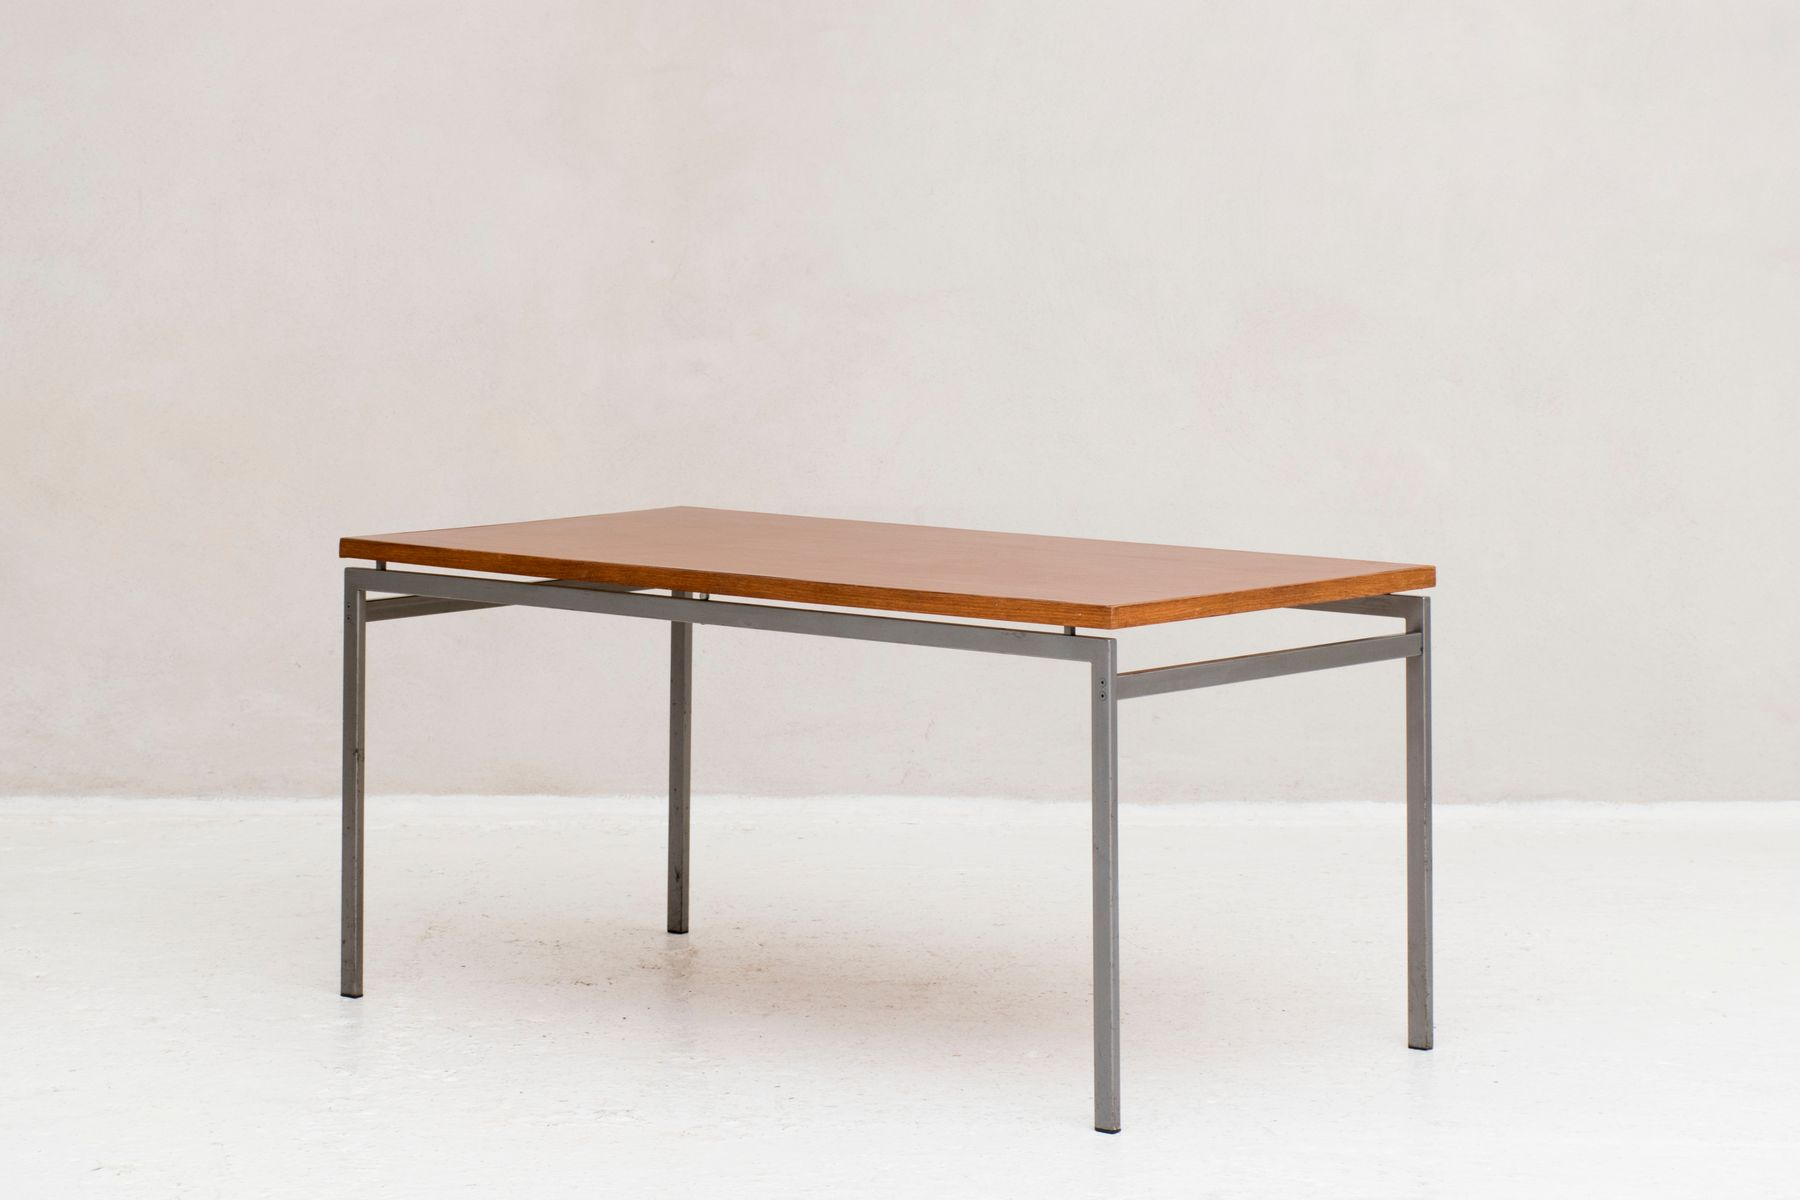 Vintage Dutch Dining Table, 1970s